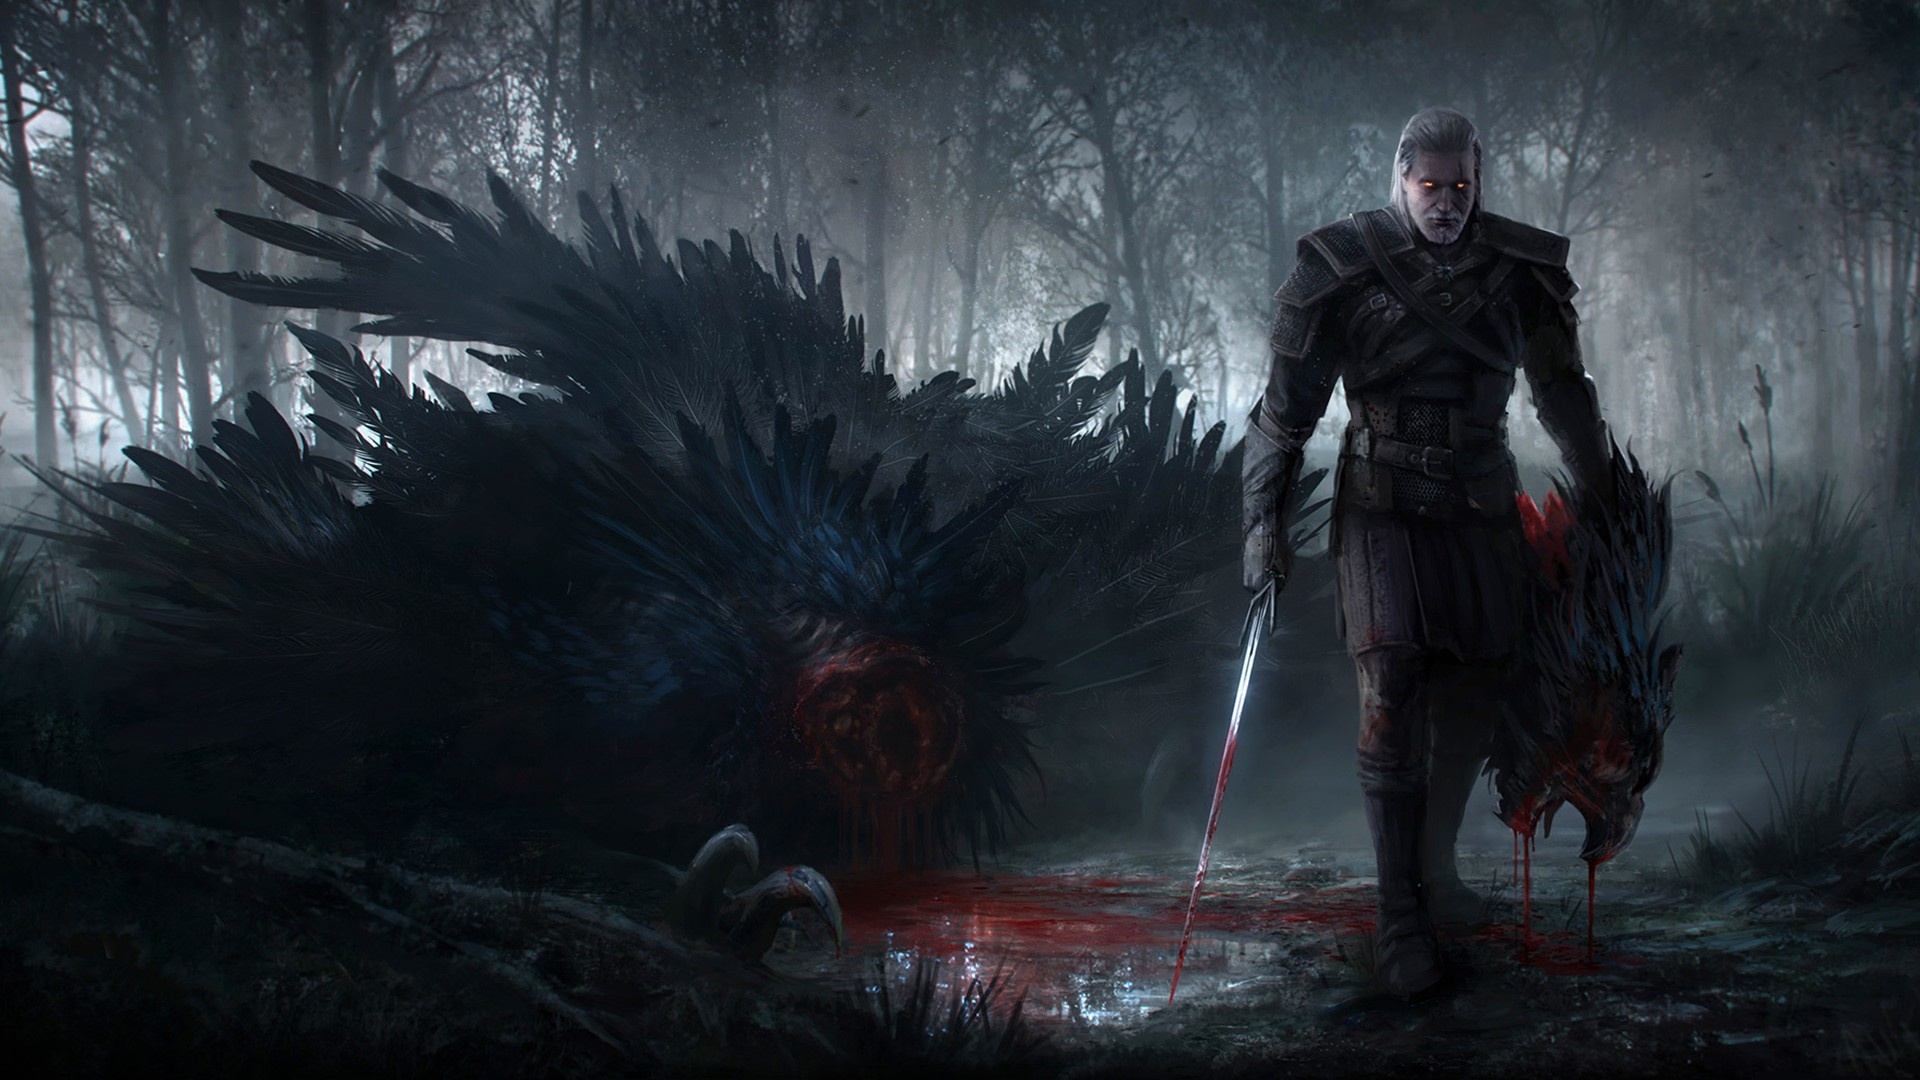 The Witcher : Wild Hunt Wallpapers  HD Wallpapers 1920x1080